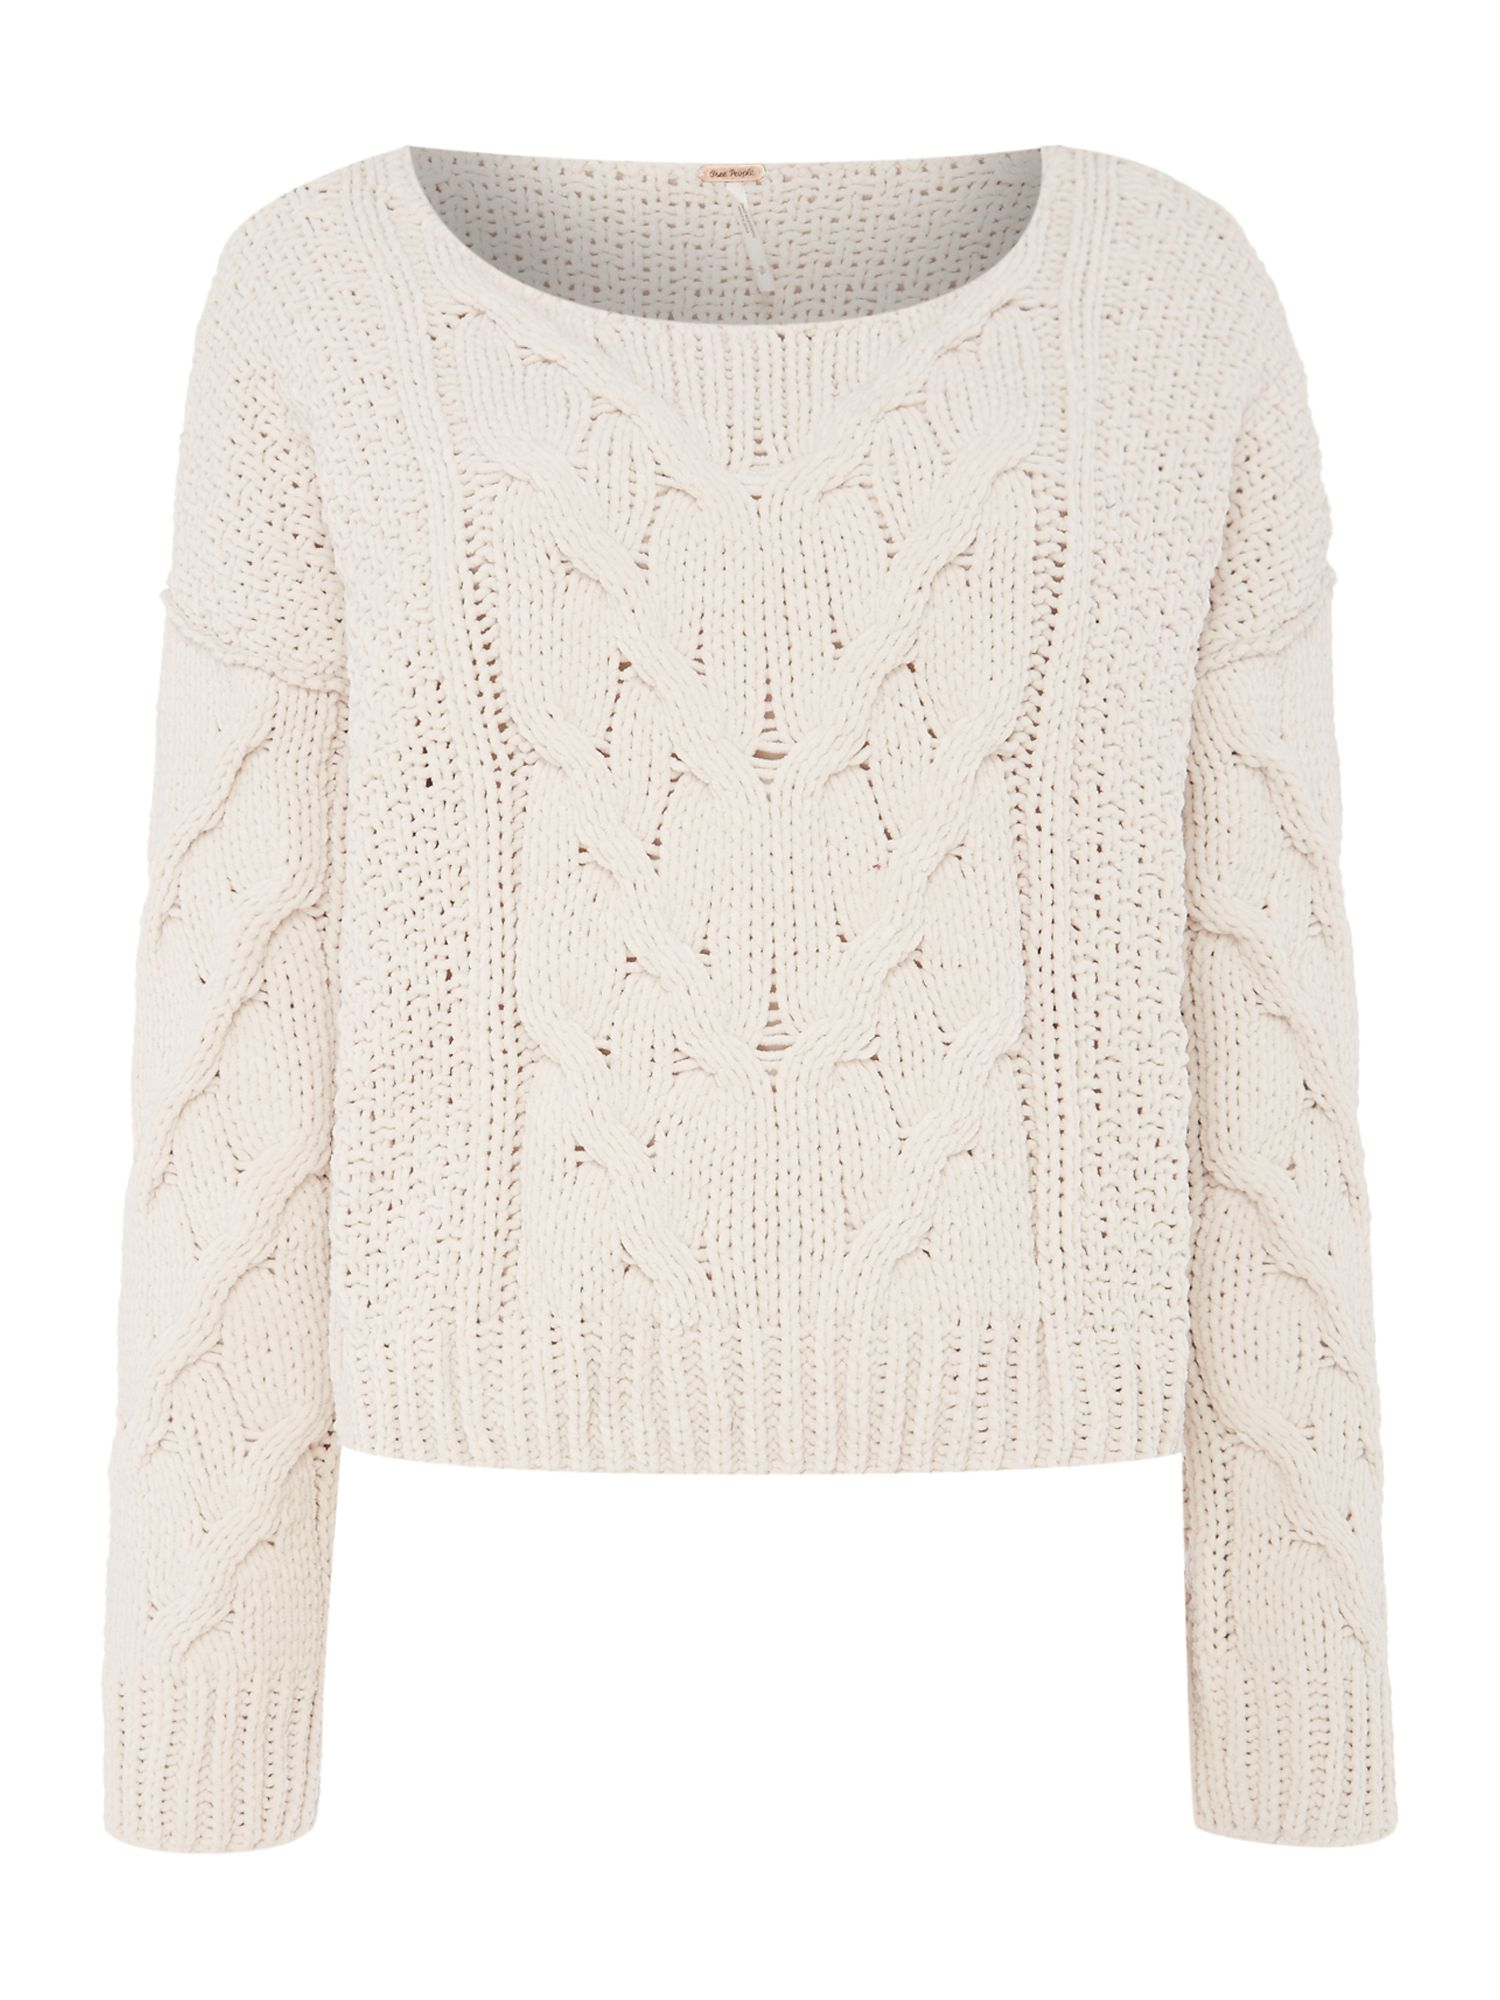 Free People Free People Sticks and Stones pullover top in ivory, White